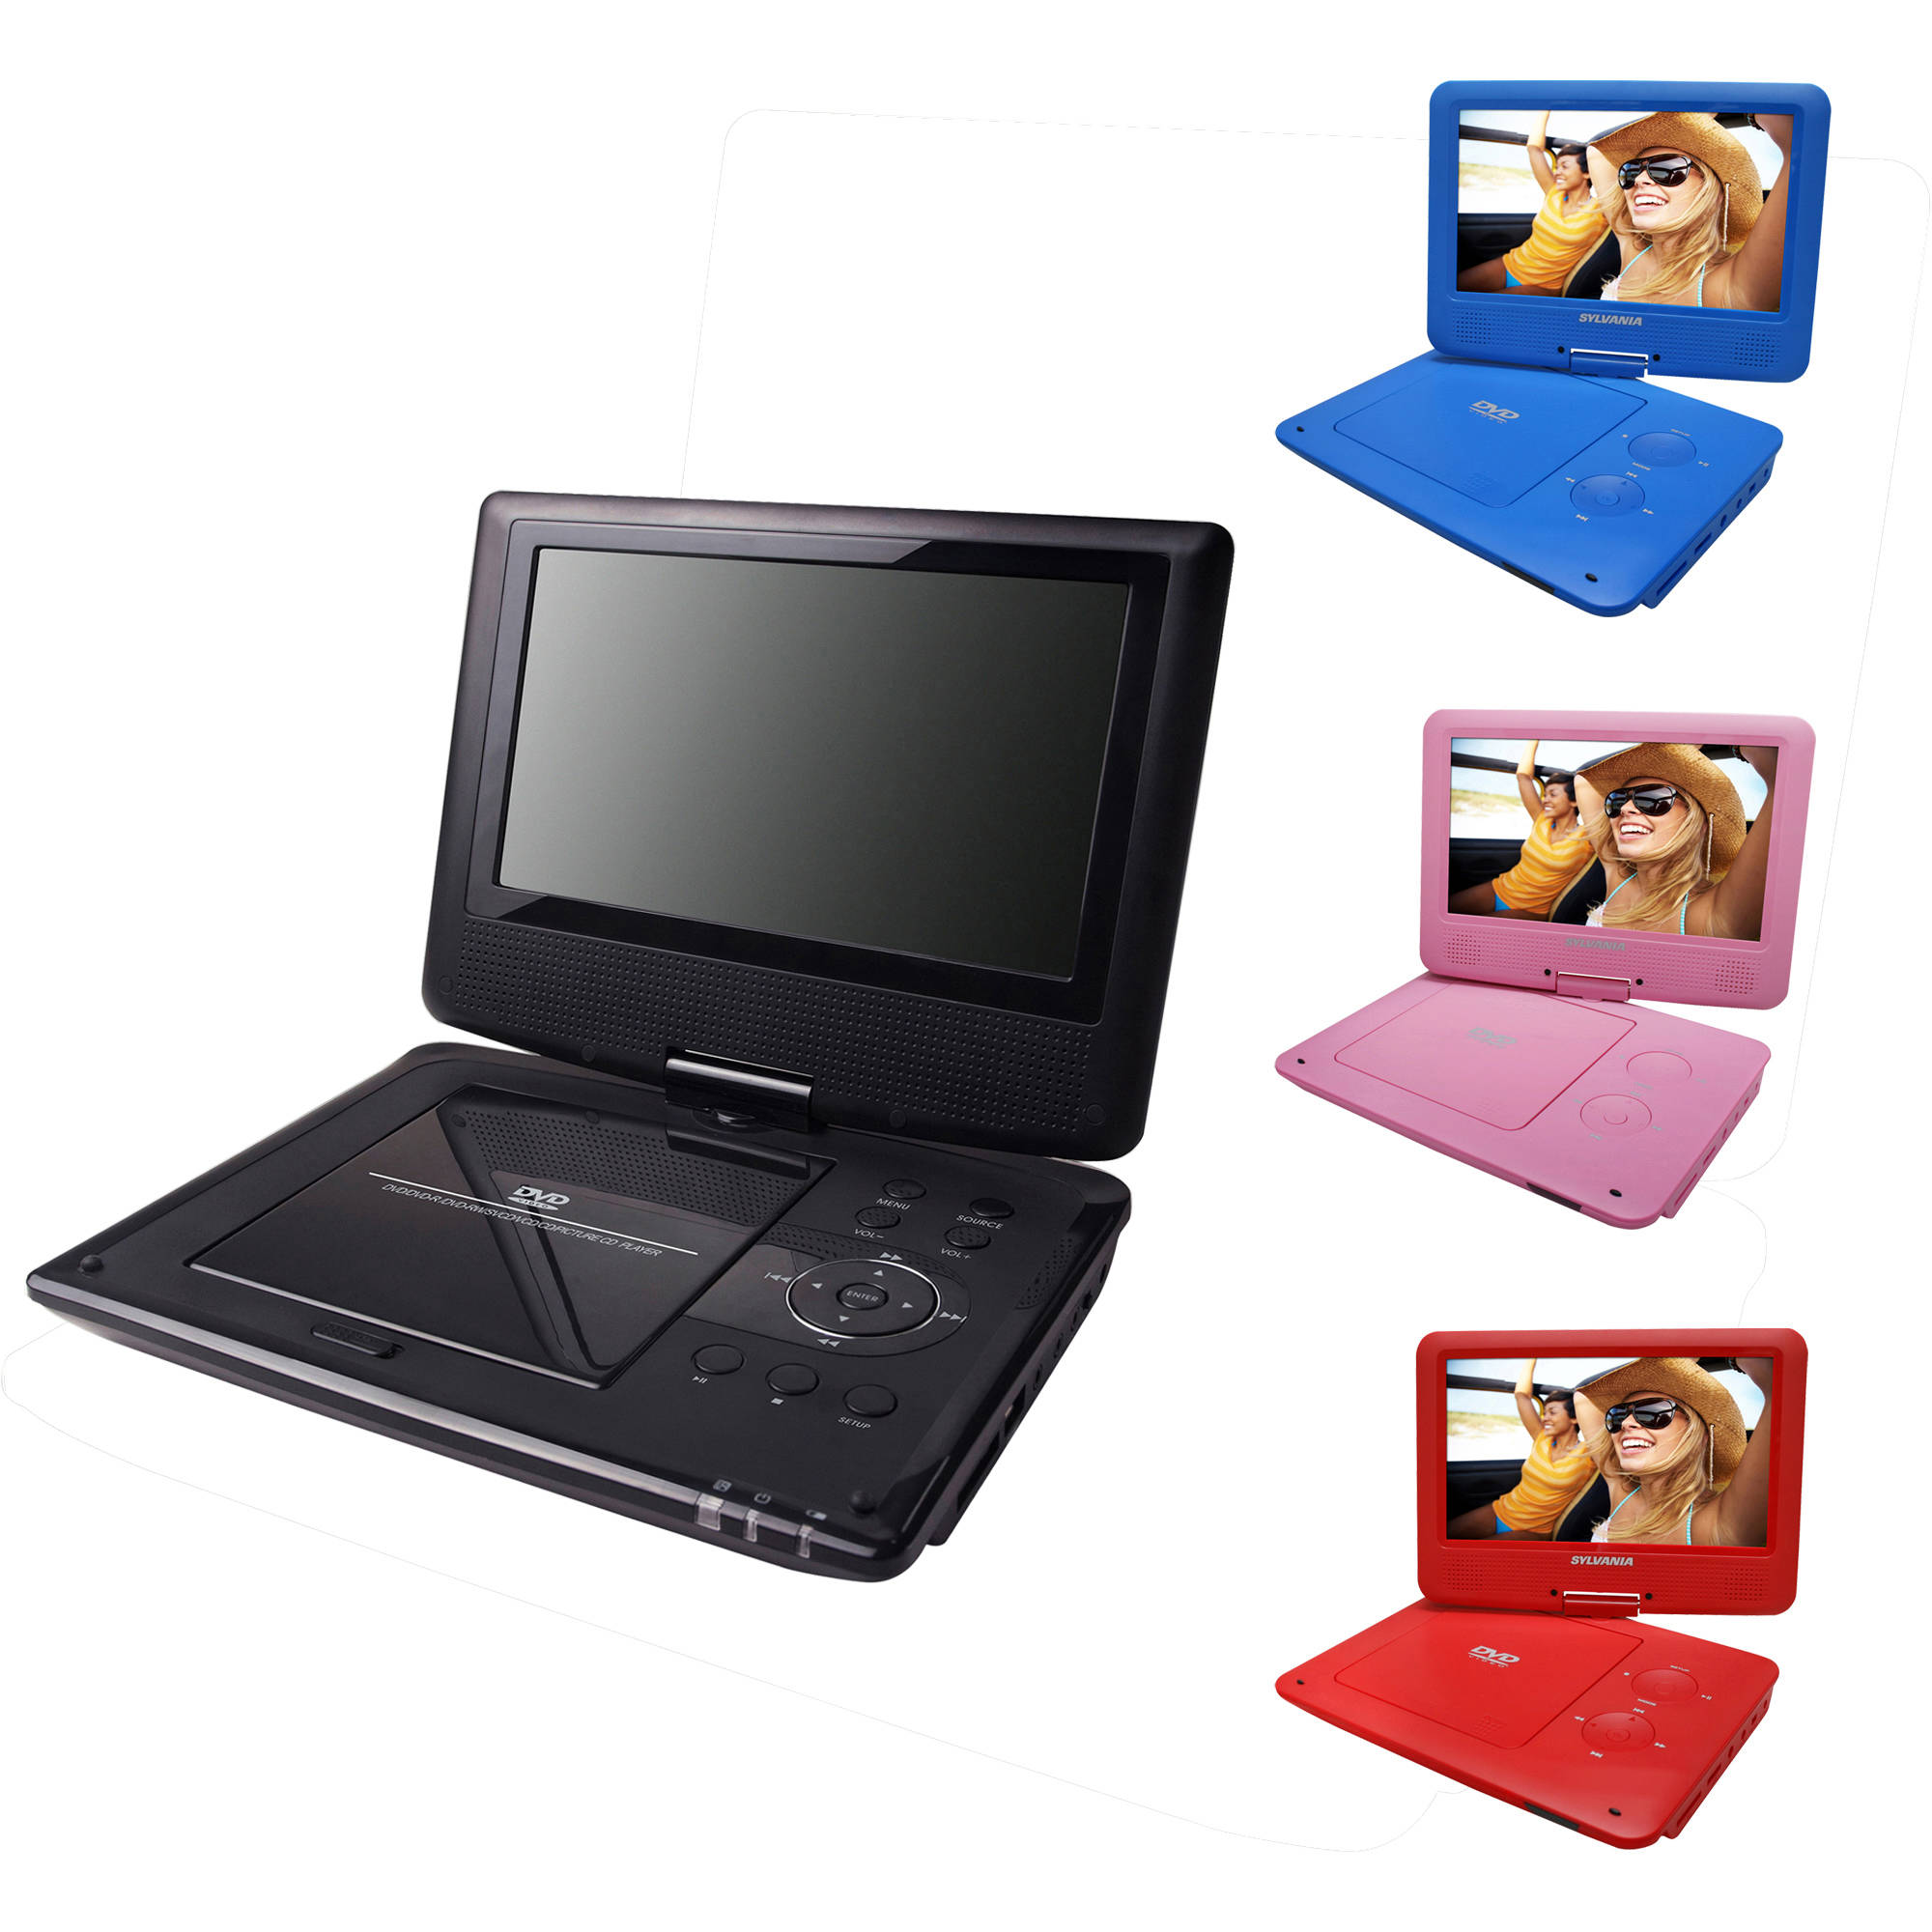 sylvania 9 portable dvd player w swivel screen 5hr. Black Bedroom Furniture Sets. Home Design Ideas